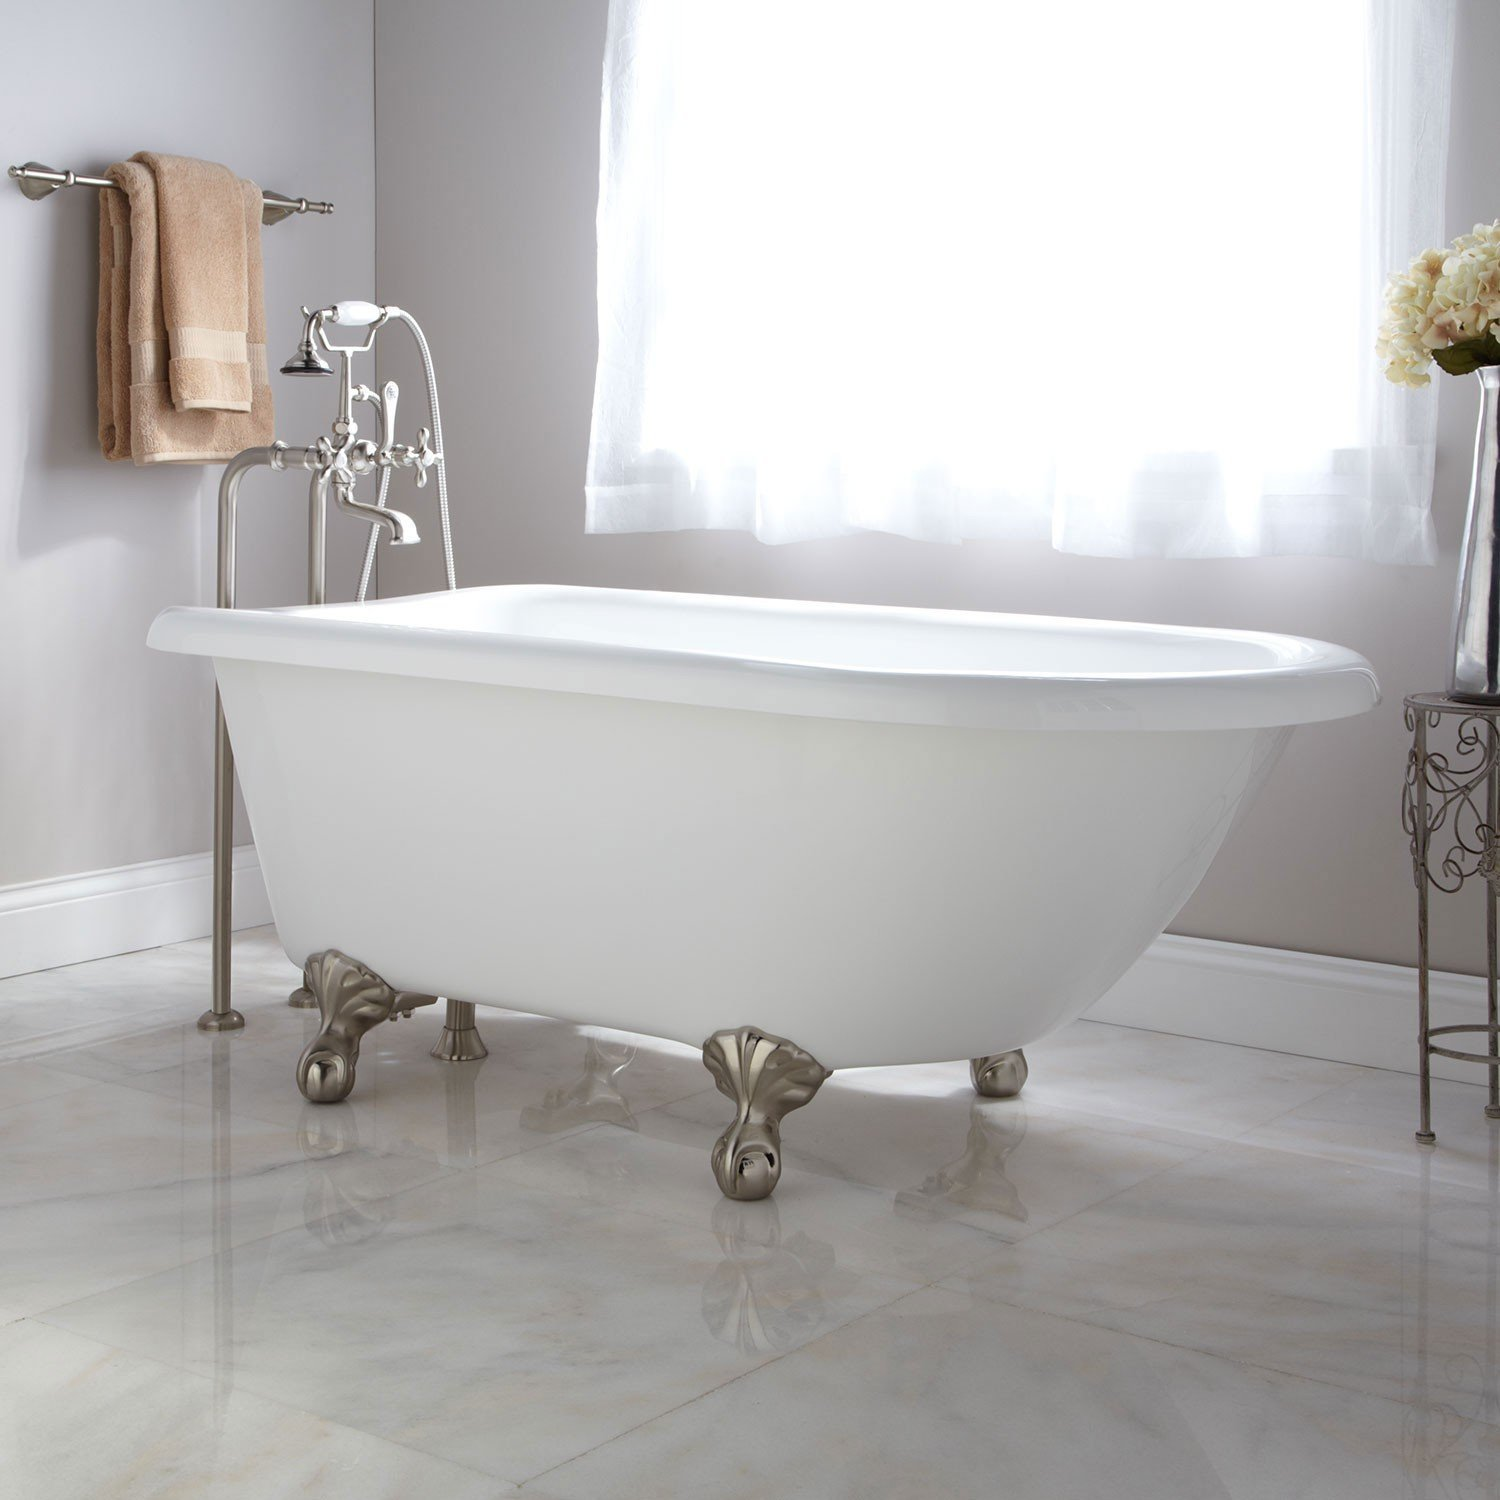 20 best small bathtubs to buy in 2018 for Small bathroom tub